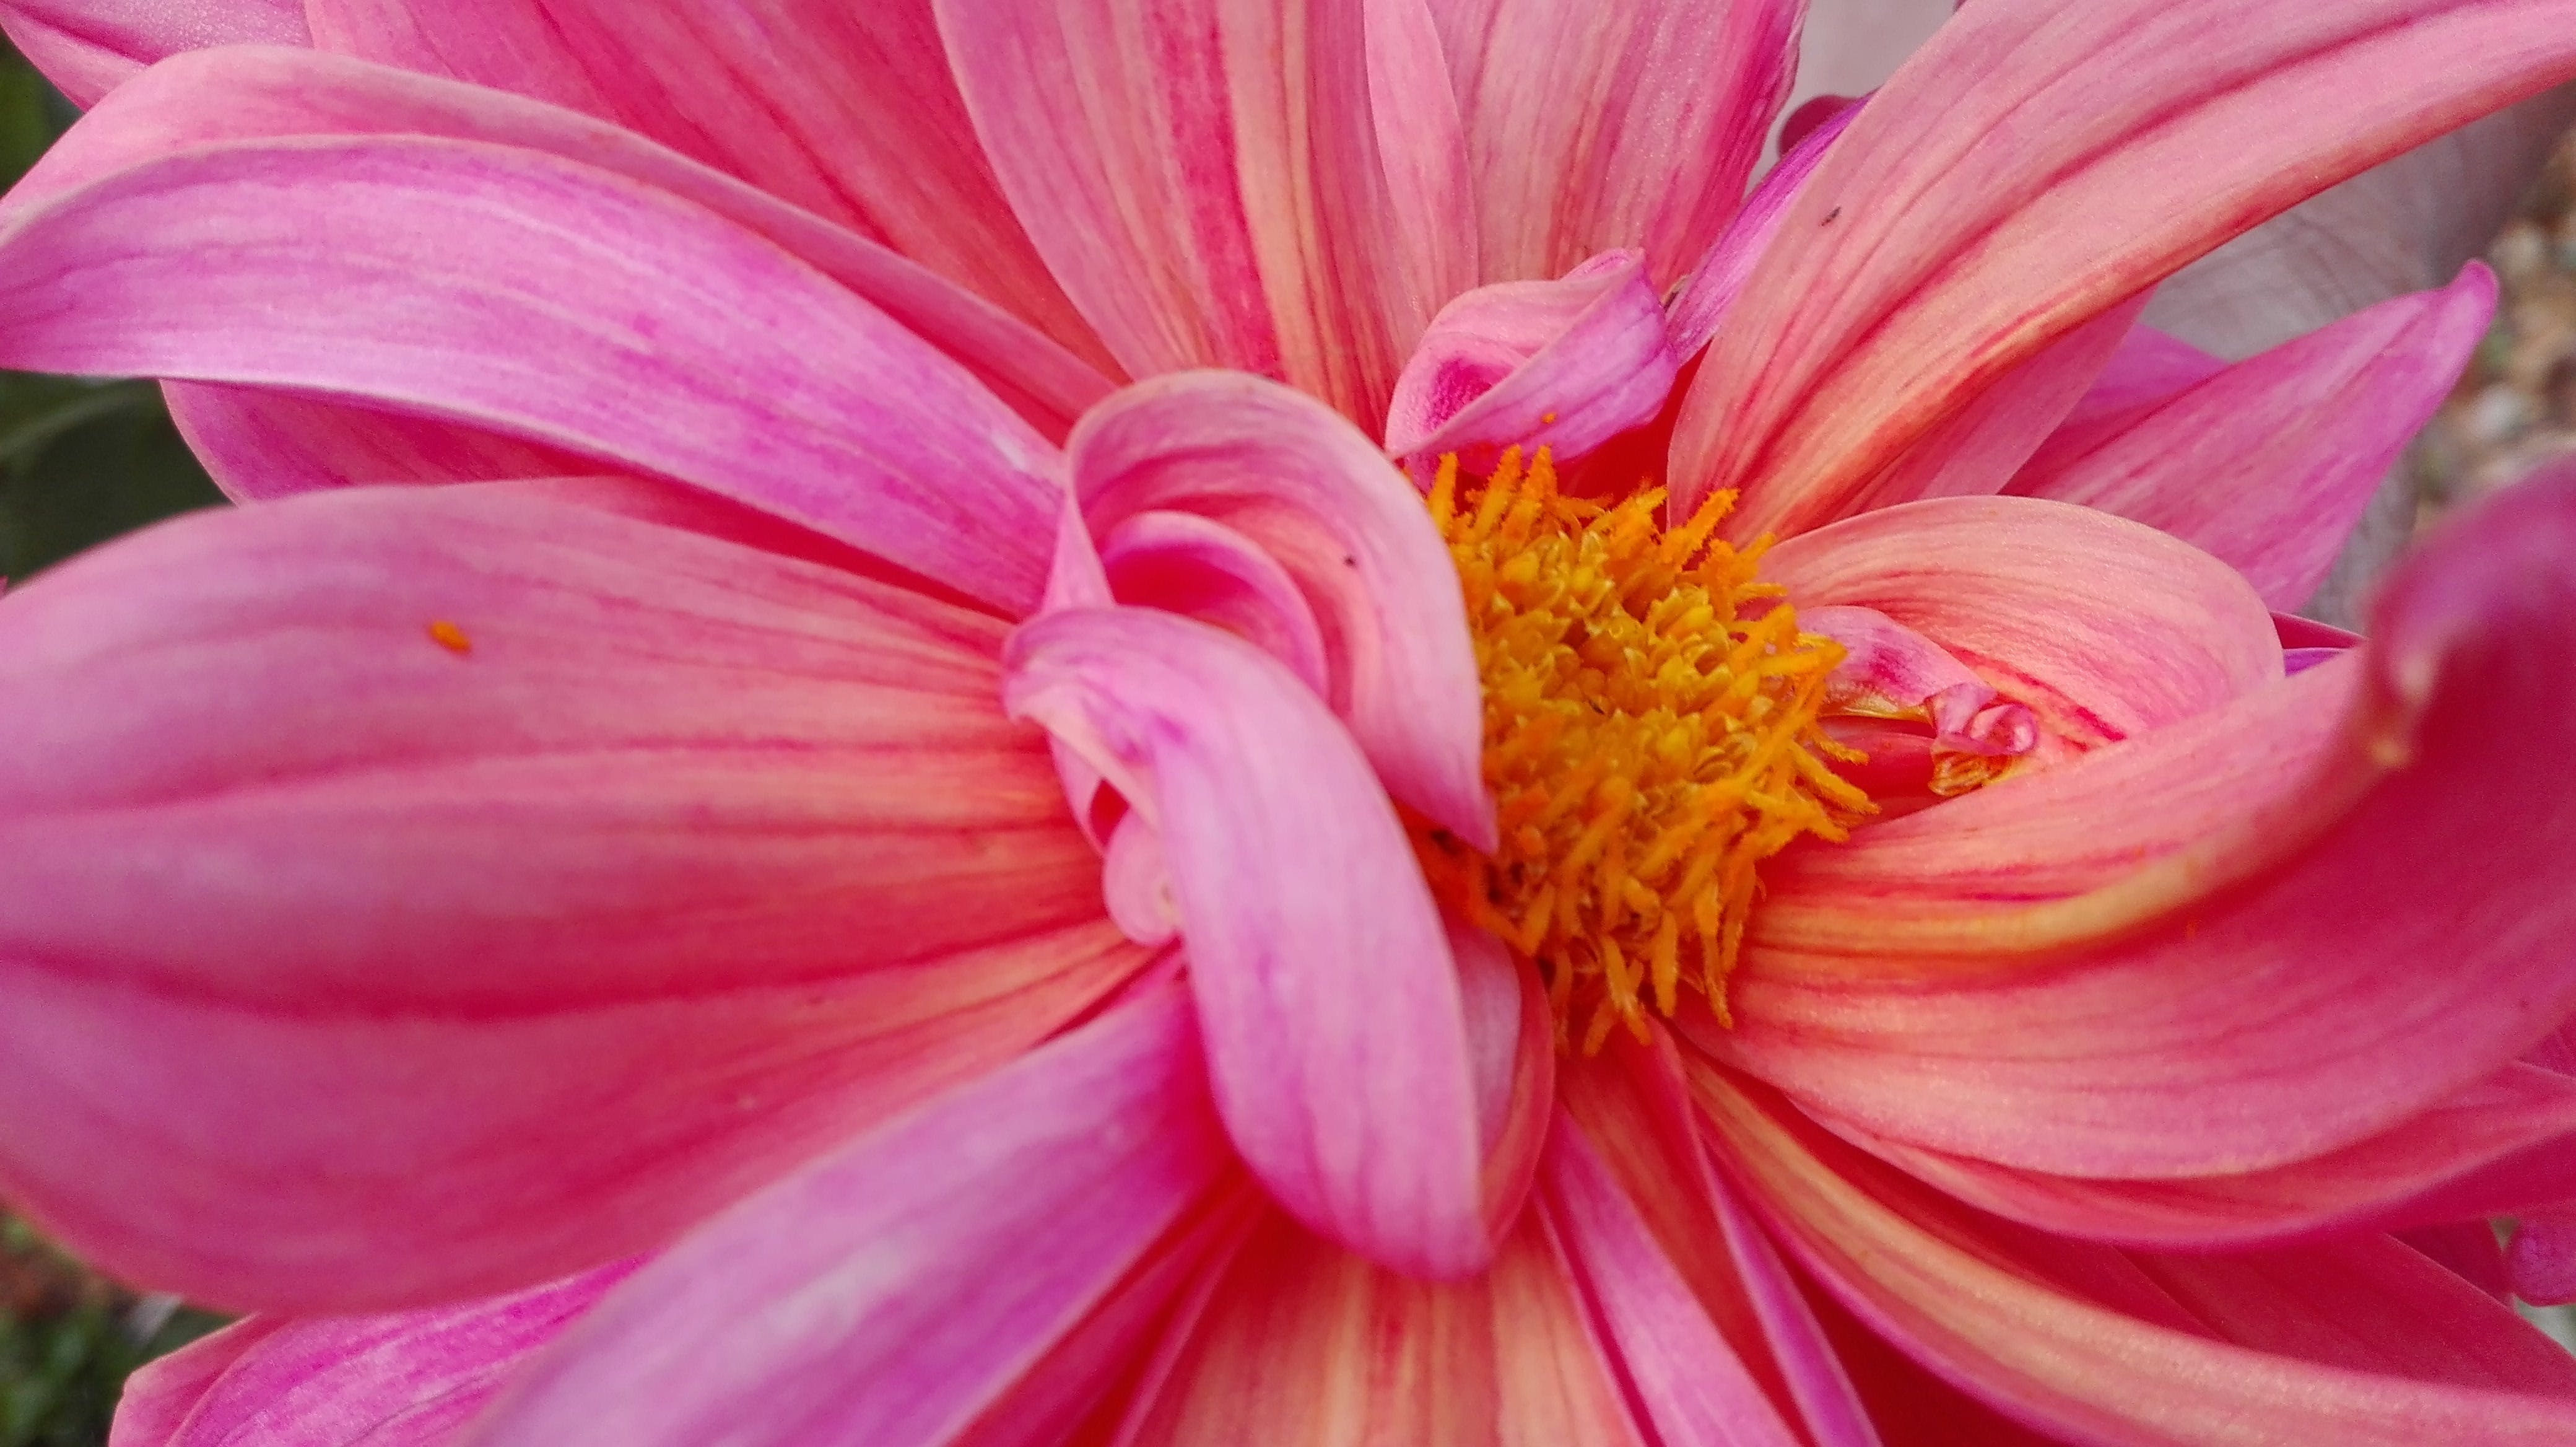 Macro Photography of Pink Dahlia Flower